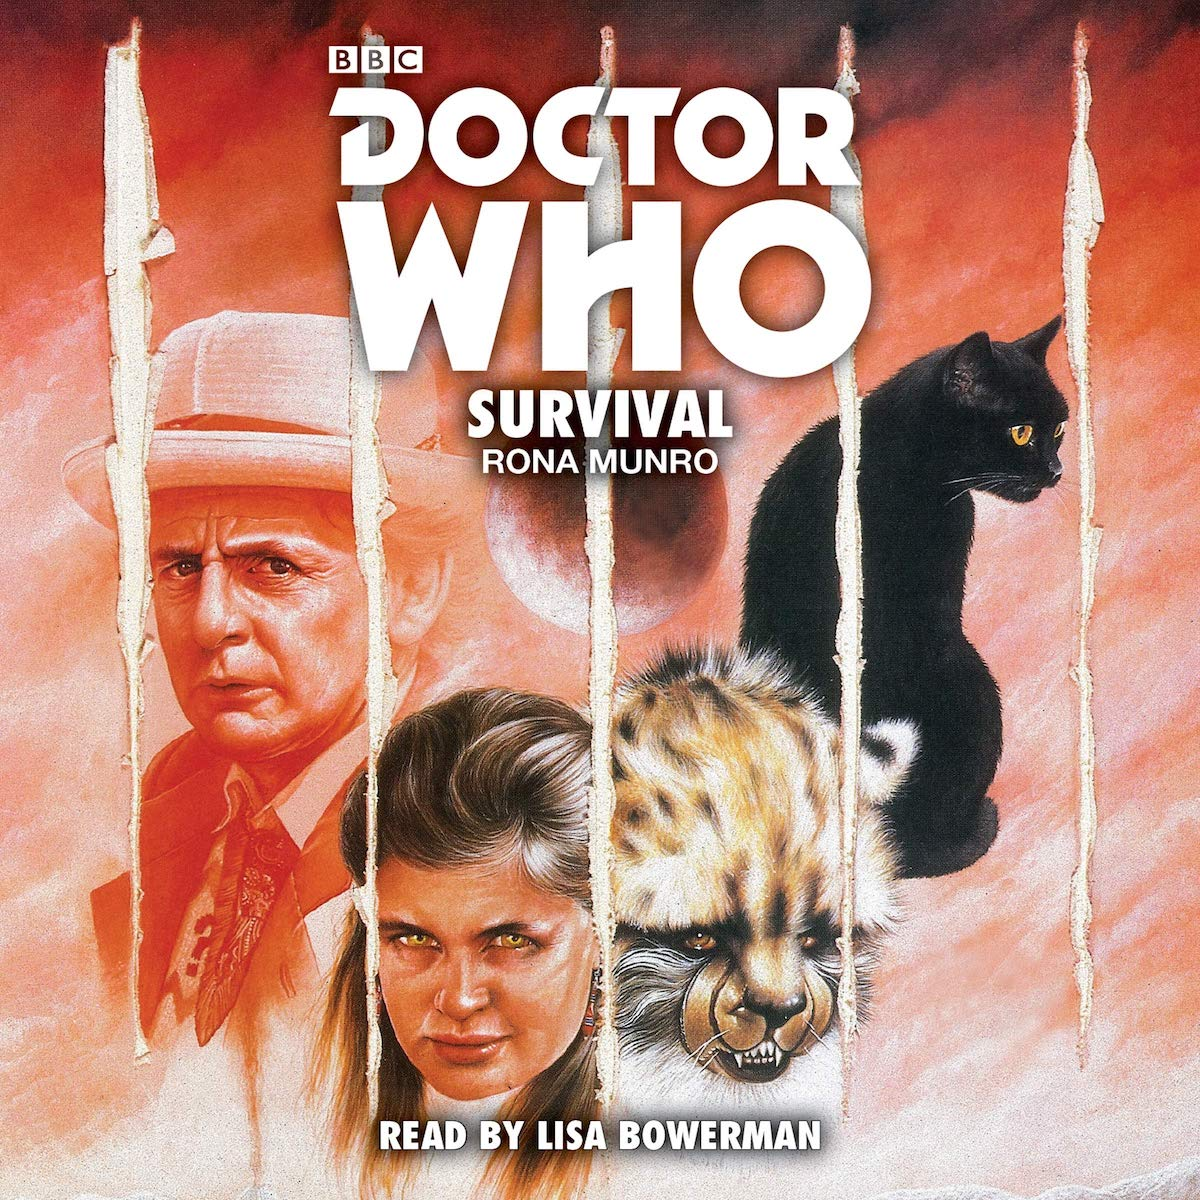 Doctor Who Survival (novel reading)